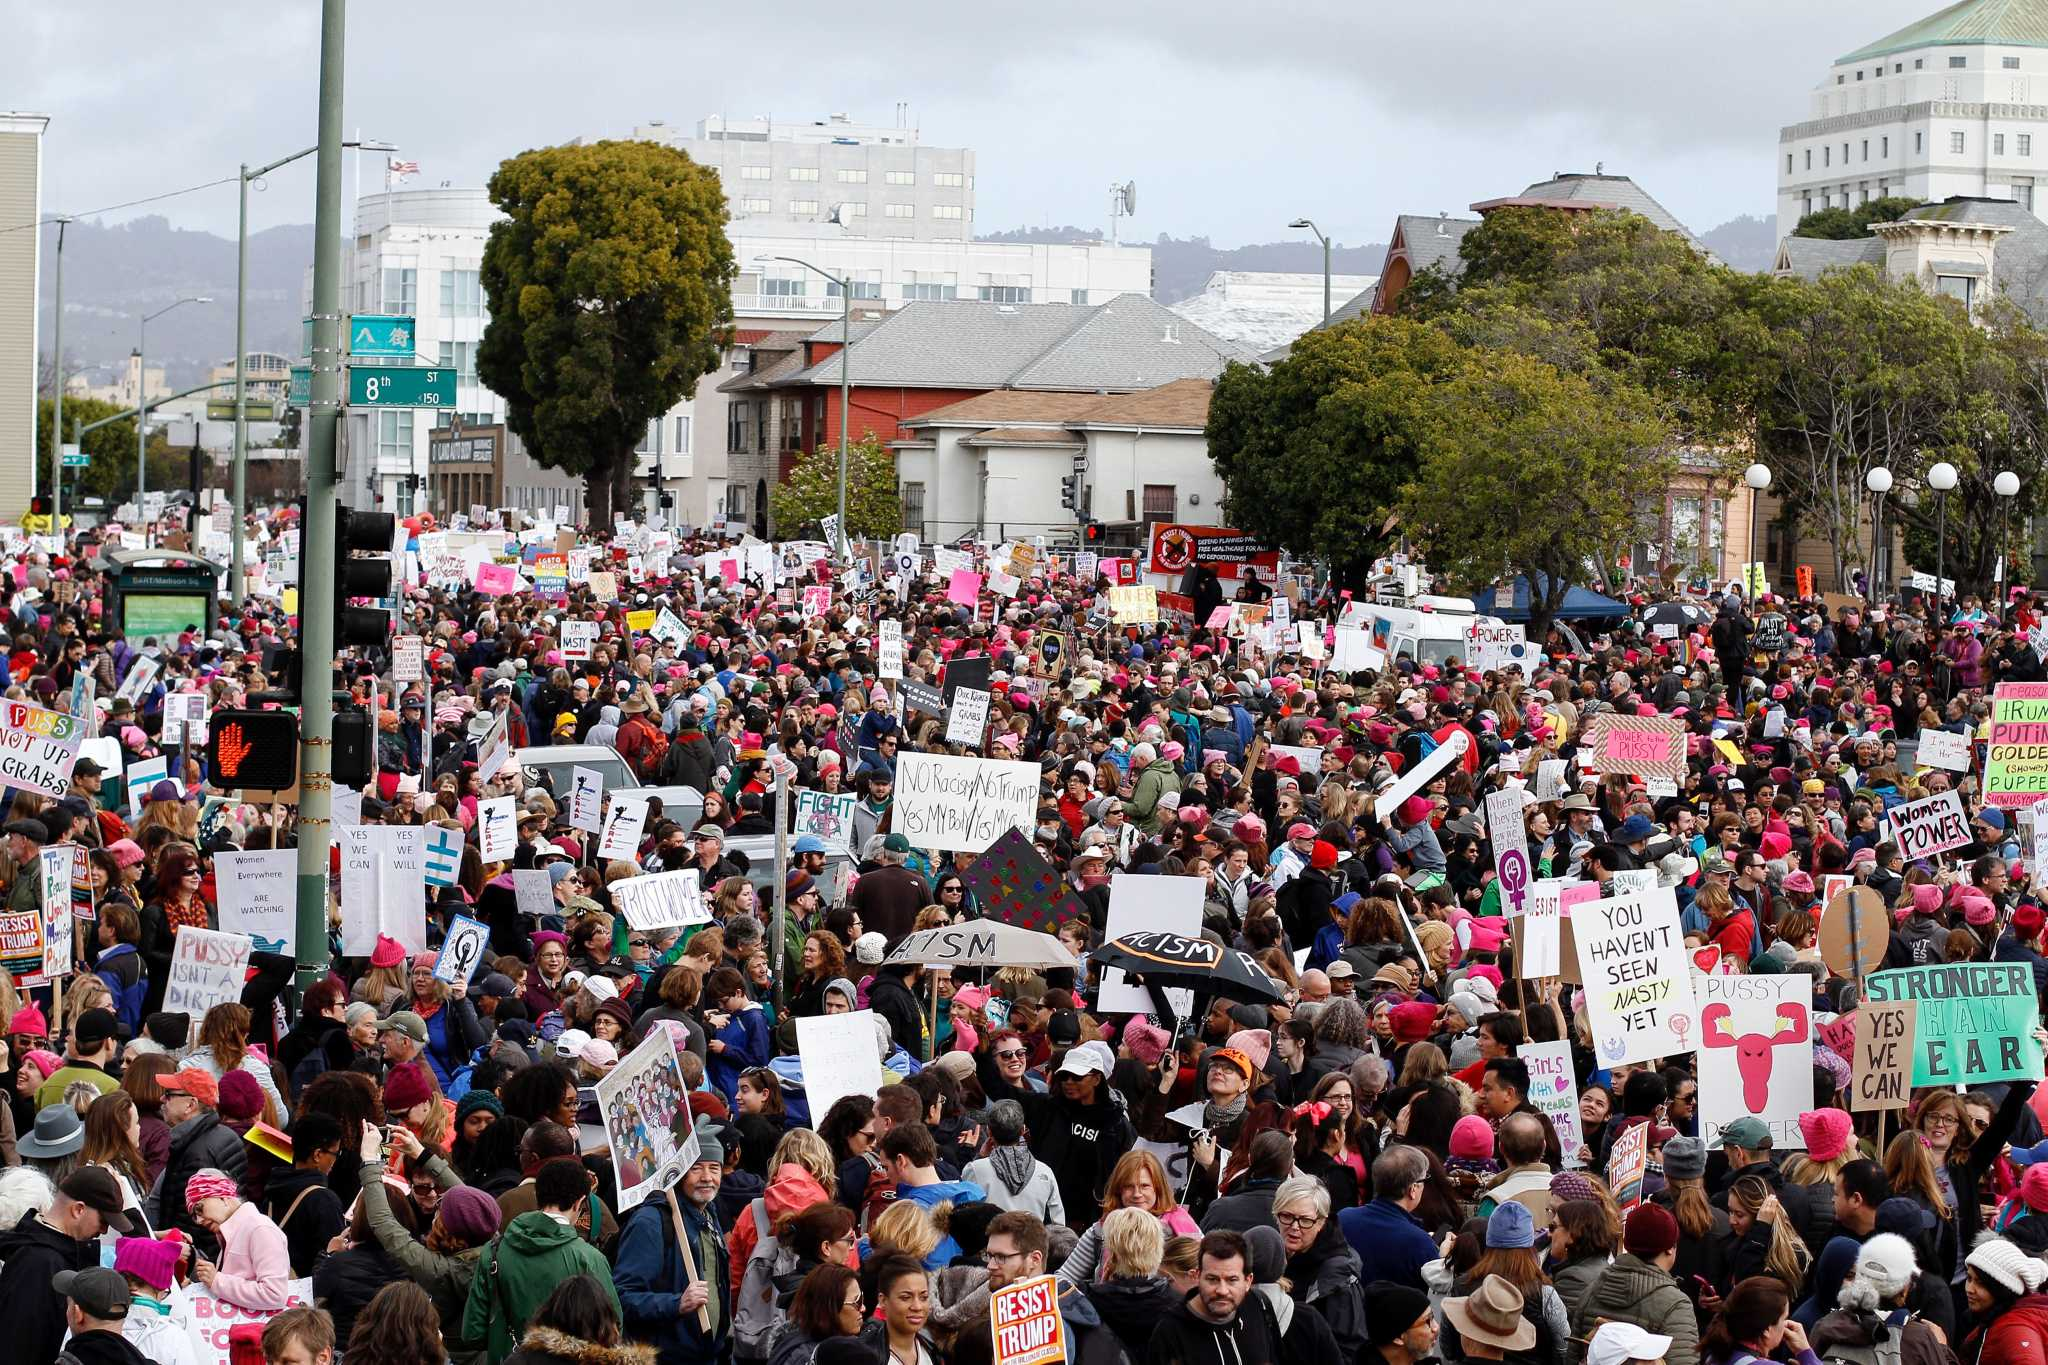 Marchers hold up signs during the beginning of the Women's March in Oakland, Calif. on Saturday, January 21, 2017 (Mason Rockfellow/ Xpress).